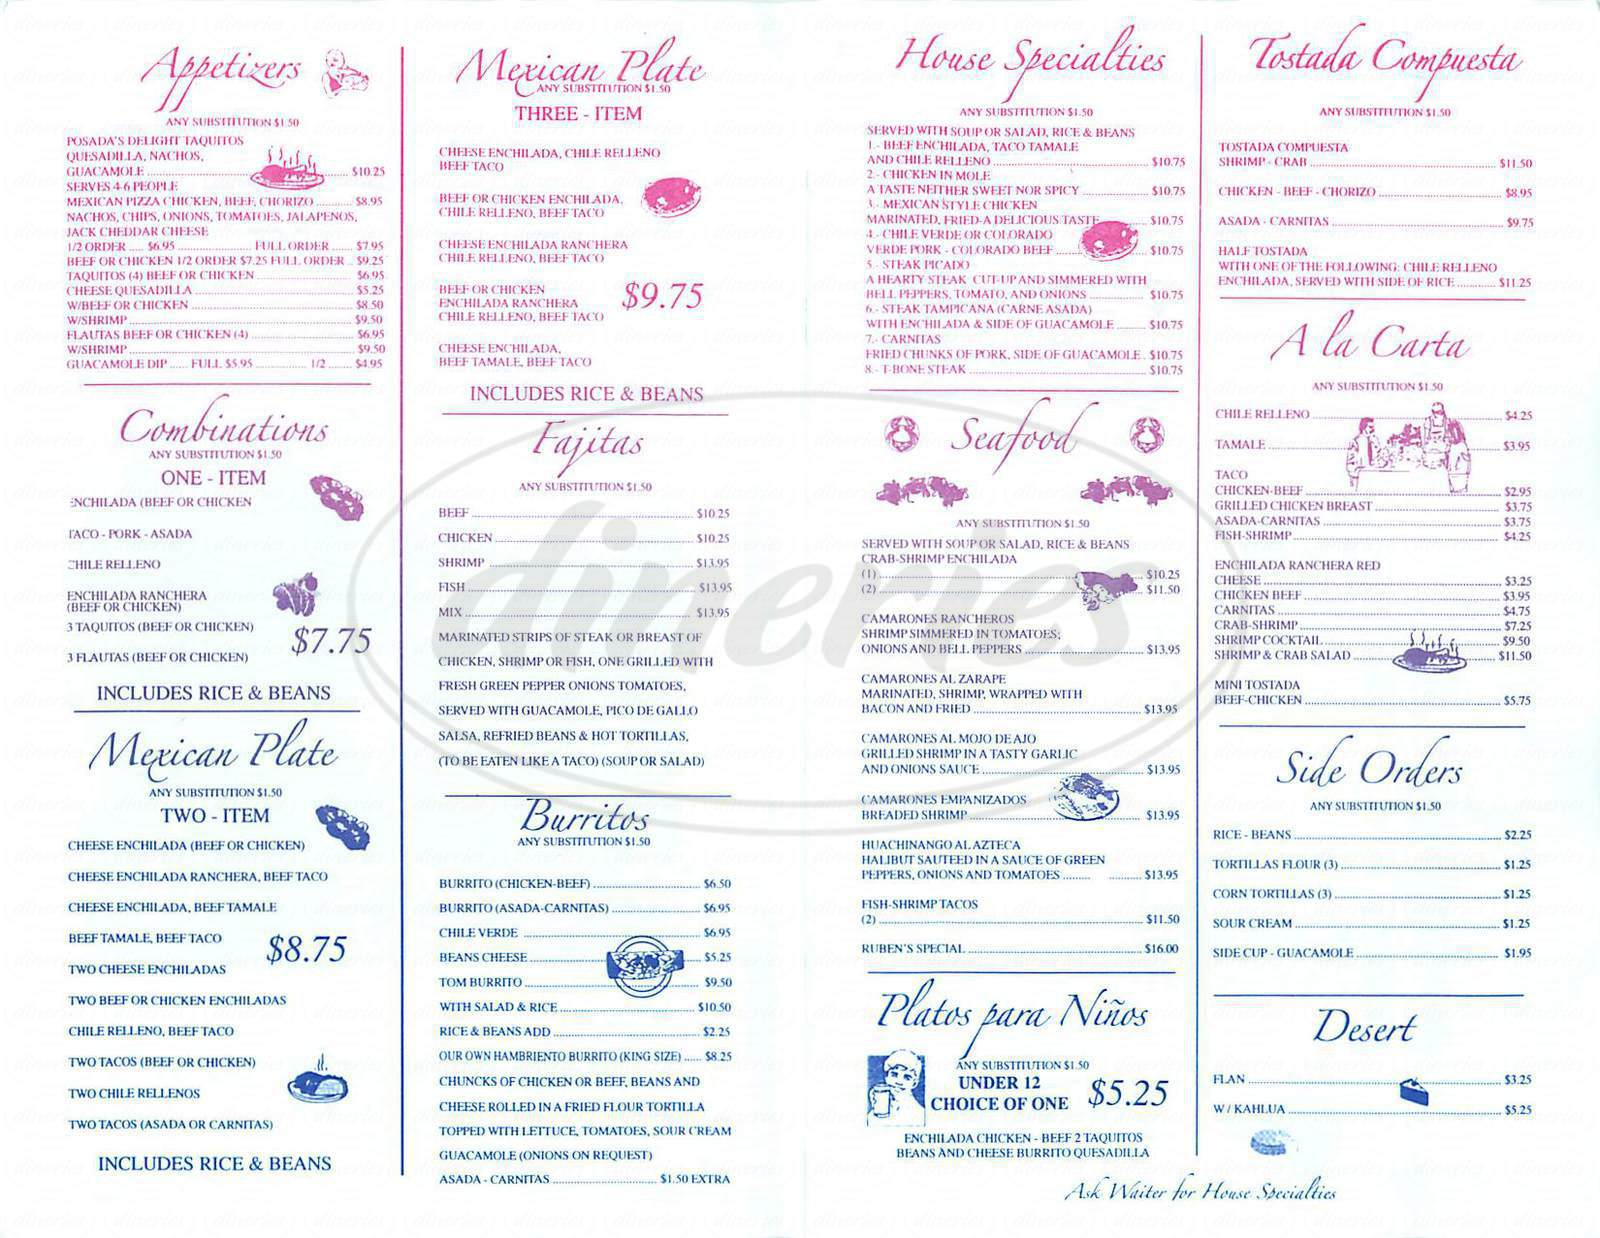 menu for La Nueva Posada